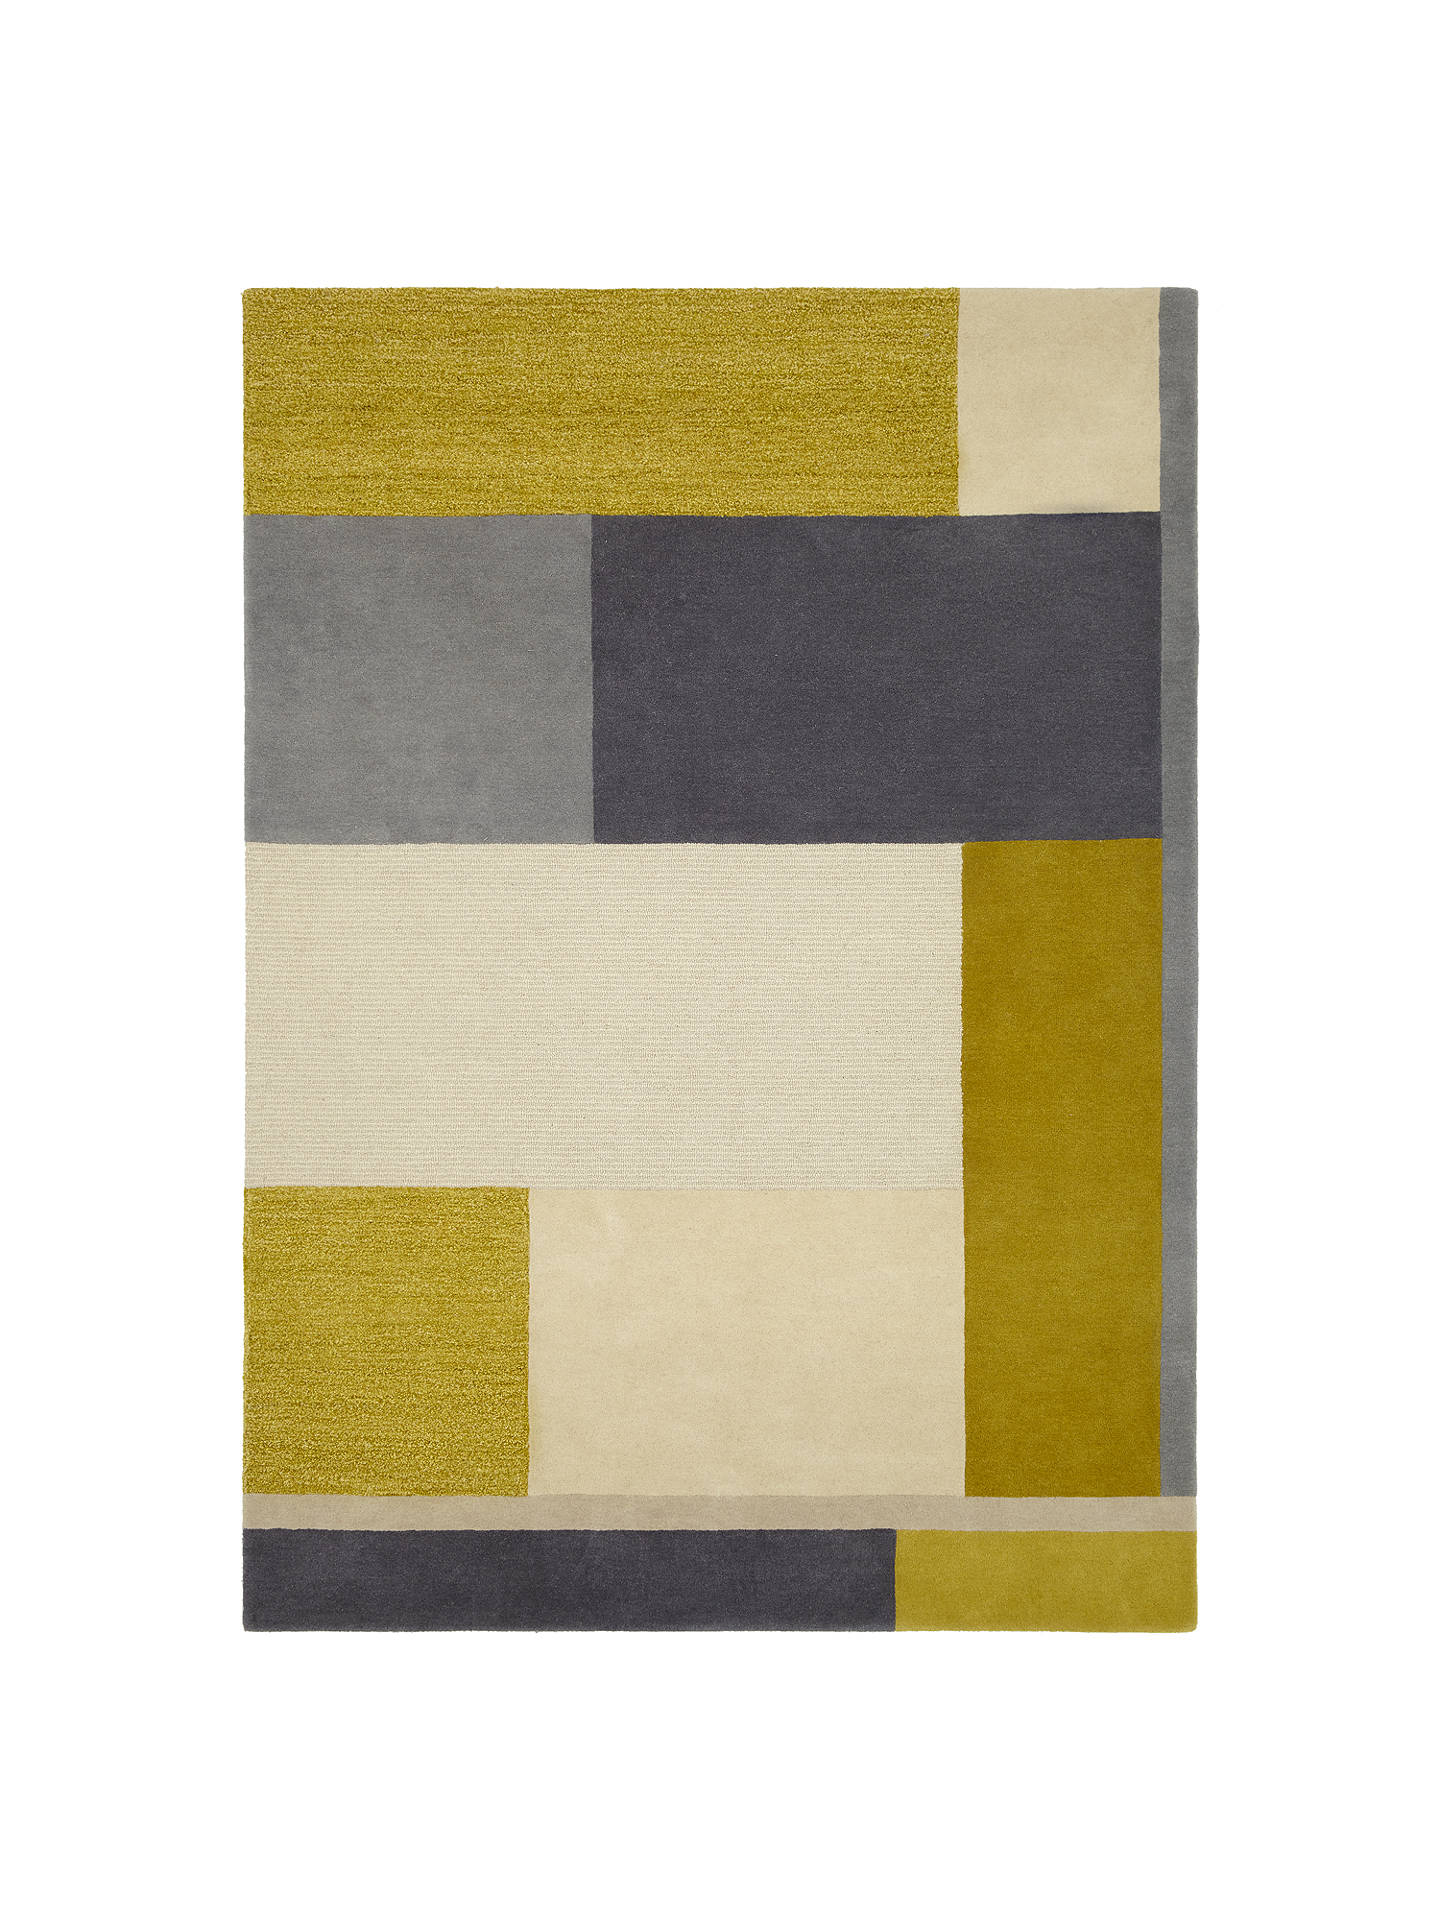 BuyJohn Lewis & Partners Riga Rug, Citrine, L180 x W120cm Online at johnlewis.com